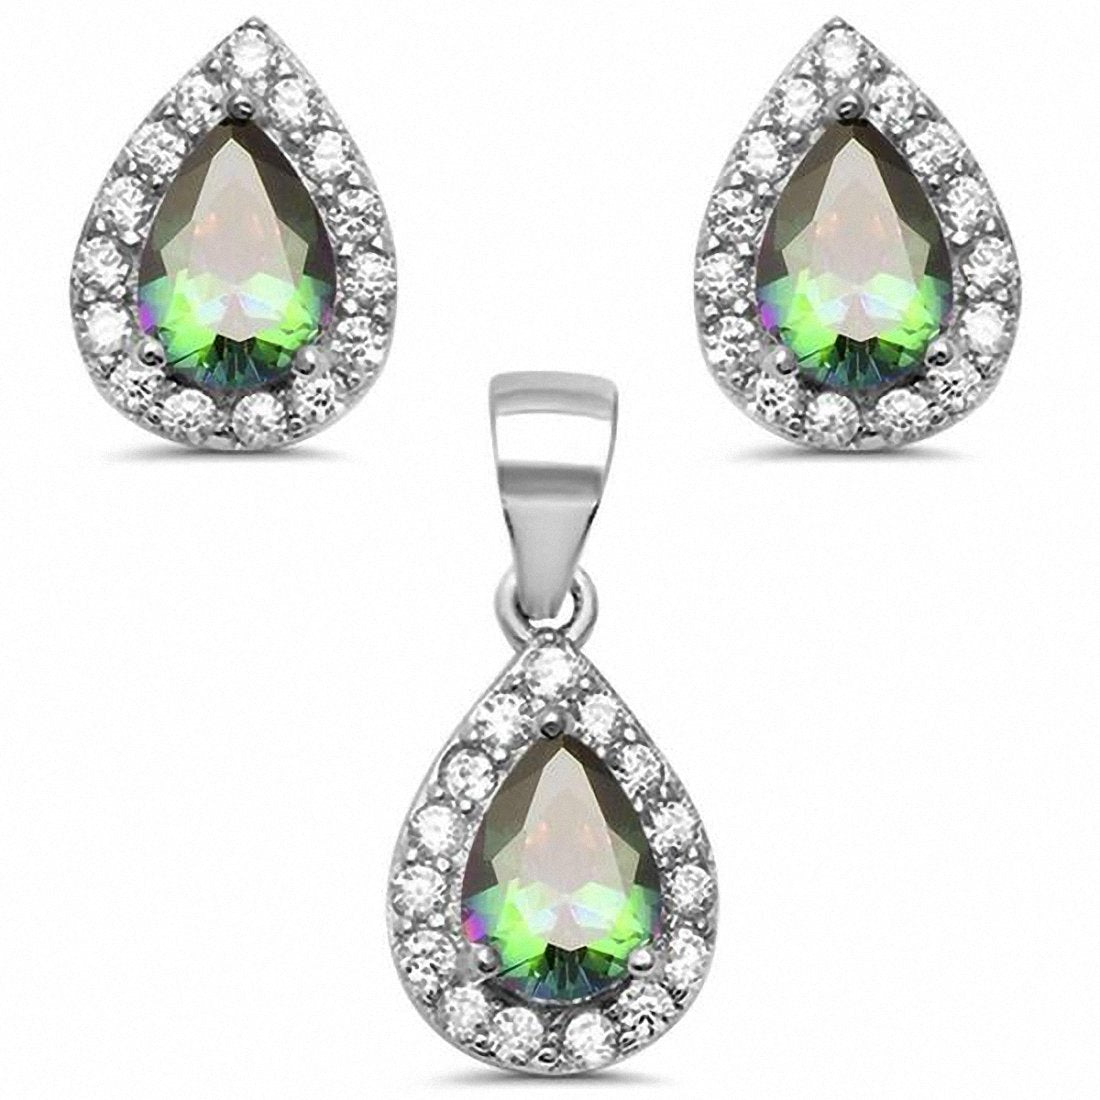 Halo Bridal Jewelry Set Teardro Simulated Pear Emerald & Round Cubic Zirconia 925 Sterling Silver Choose Color